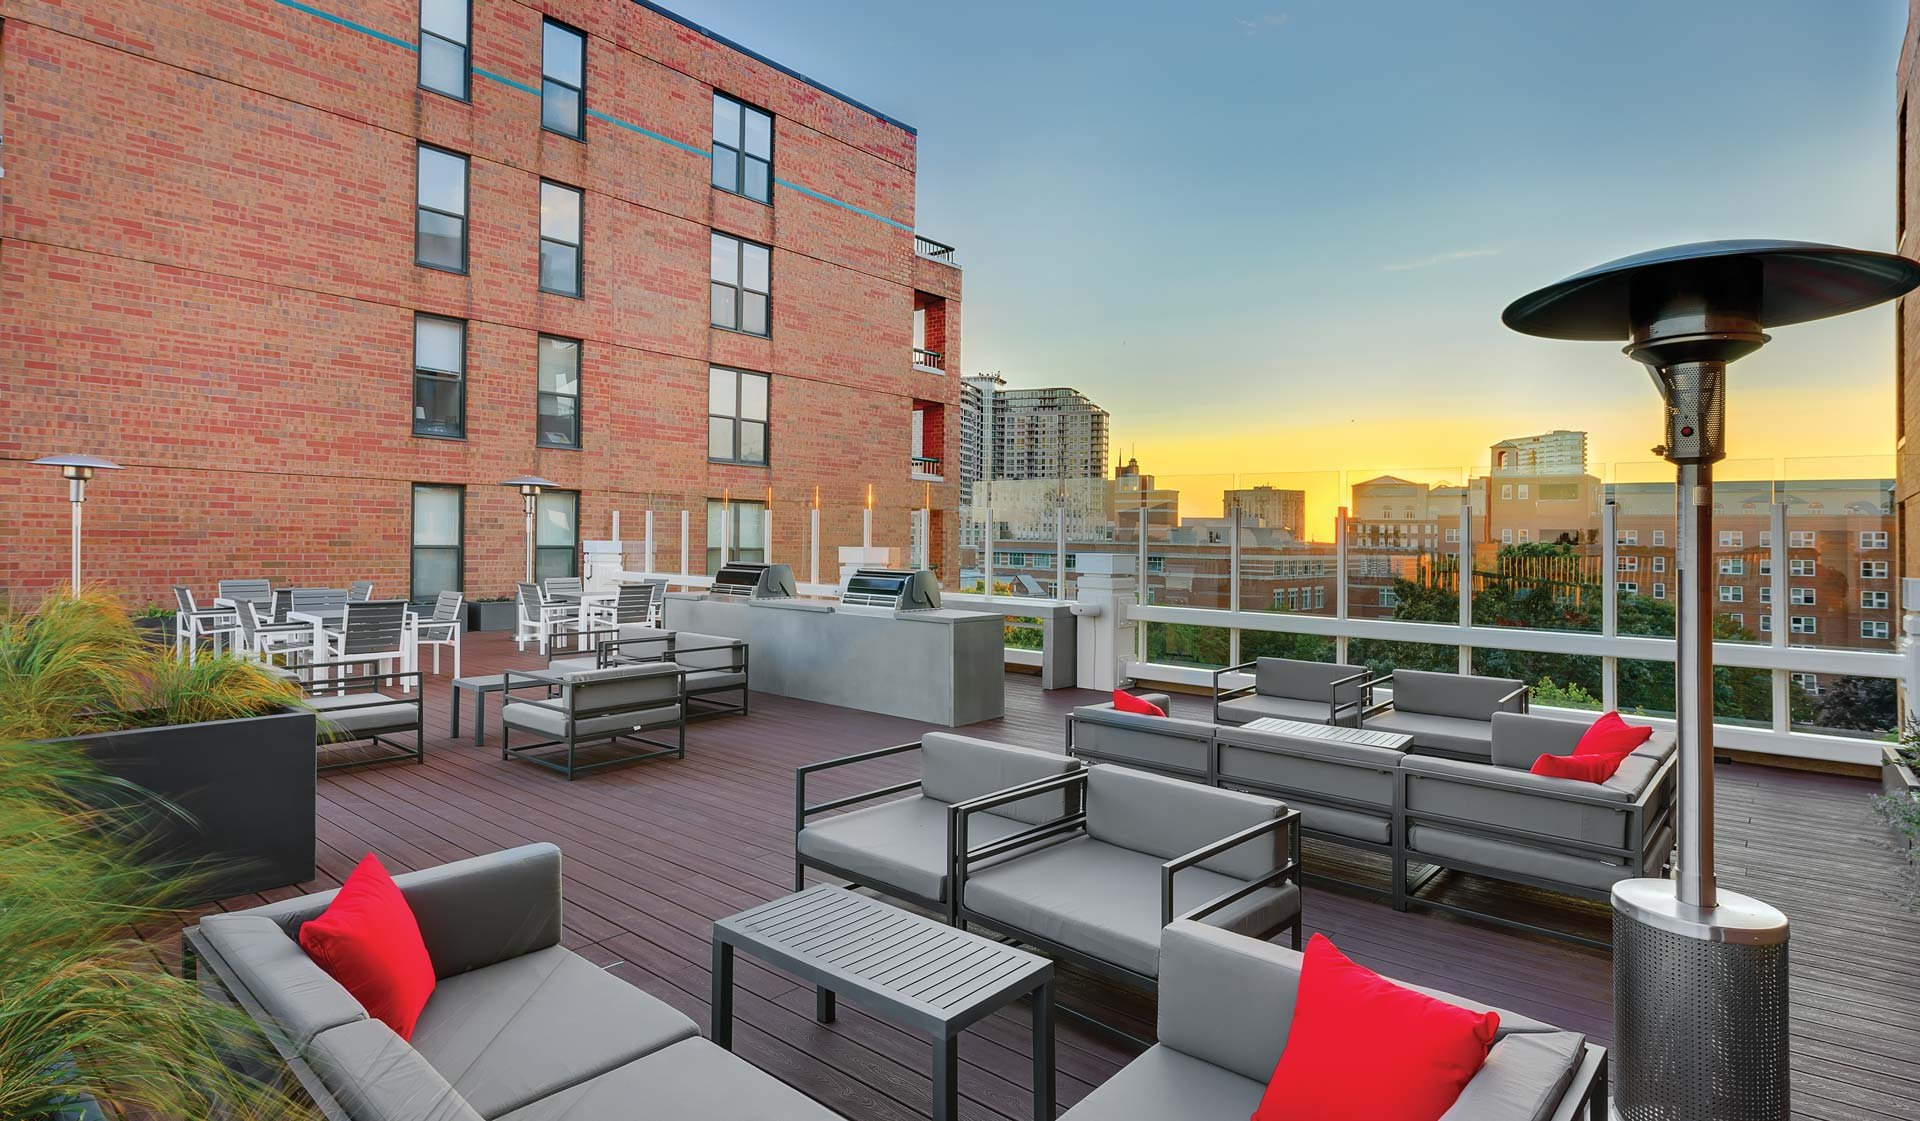 Chicago, IL Apartments for rent at Evanston Place Apartments - Social Deck